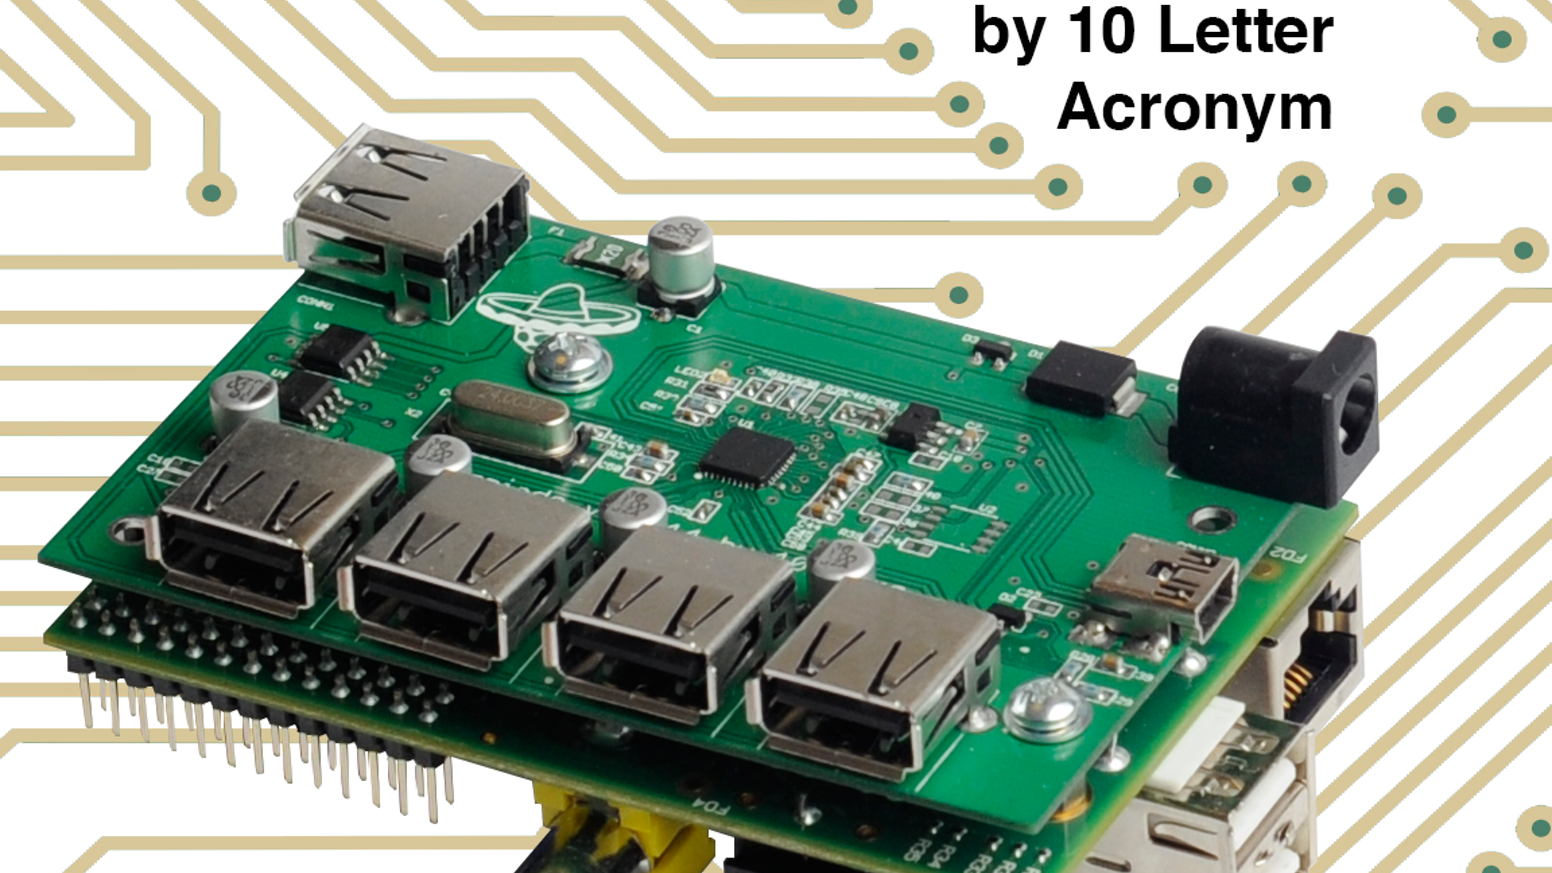 Power your Raspberry Pi, add USB ports, and look great doing it.  A limited number of Rapiados are available right now via 10LA.org at the link below.